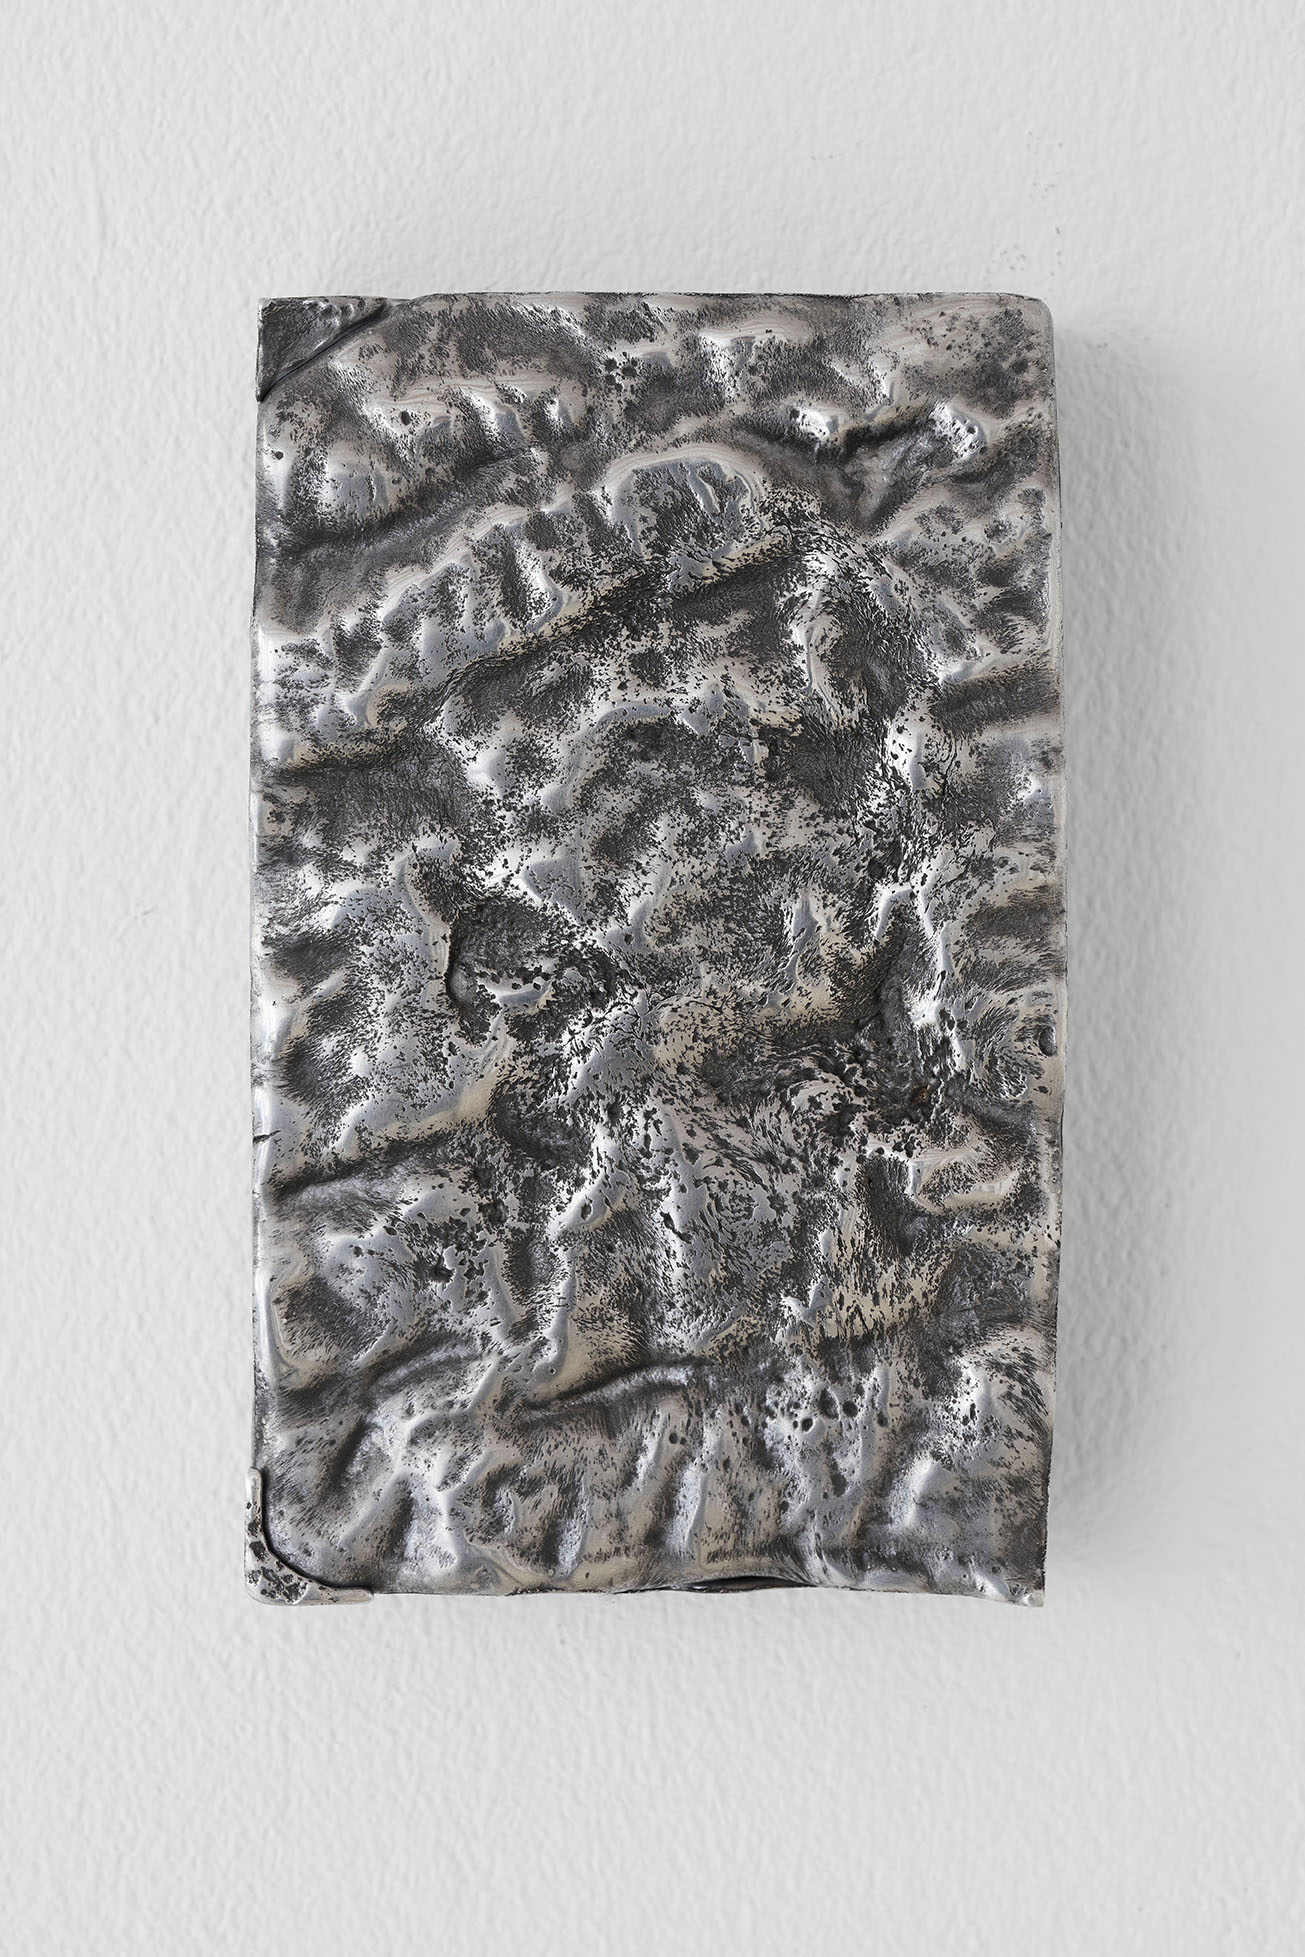 Irina Lotarevich, furs, tiny grains of rock, rough bark, 2020